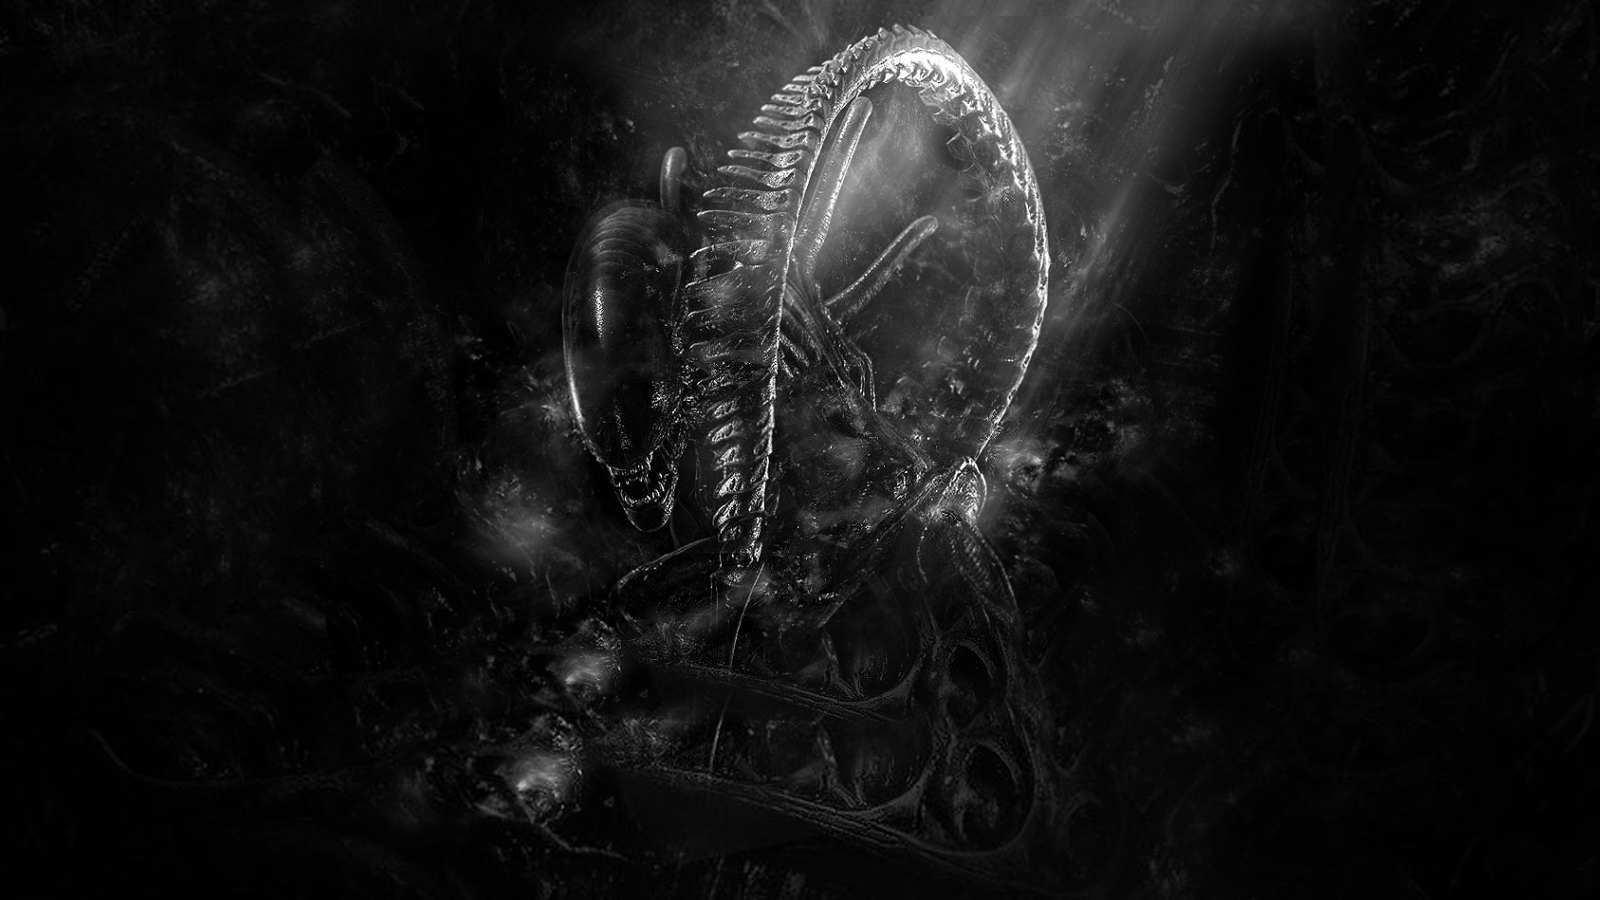 Alien Aliens images Xenomorph wallpaper 1600x900 HD 1600x900